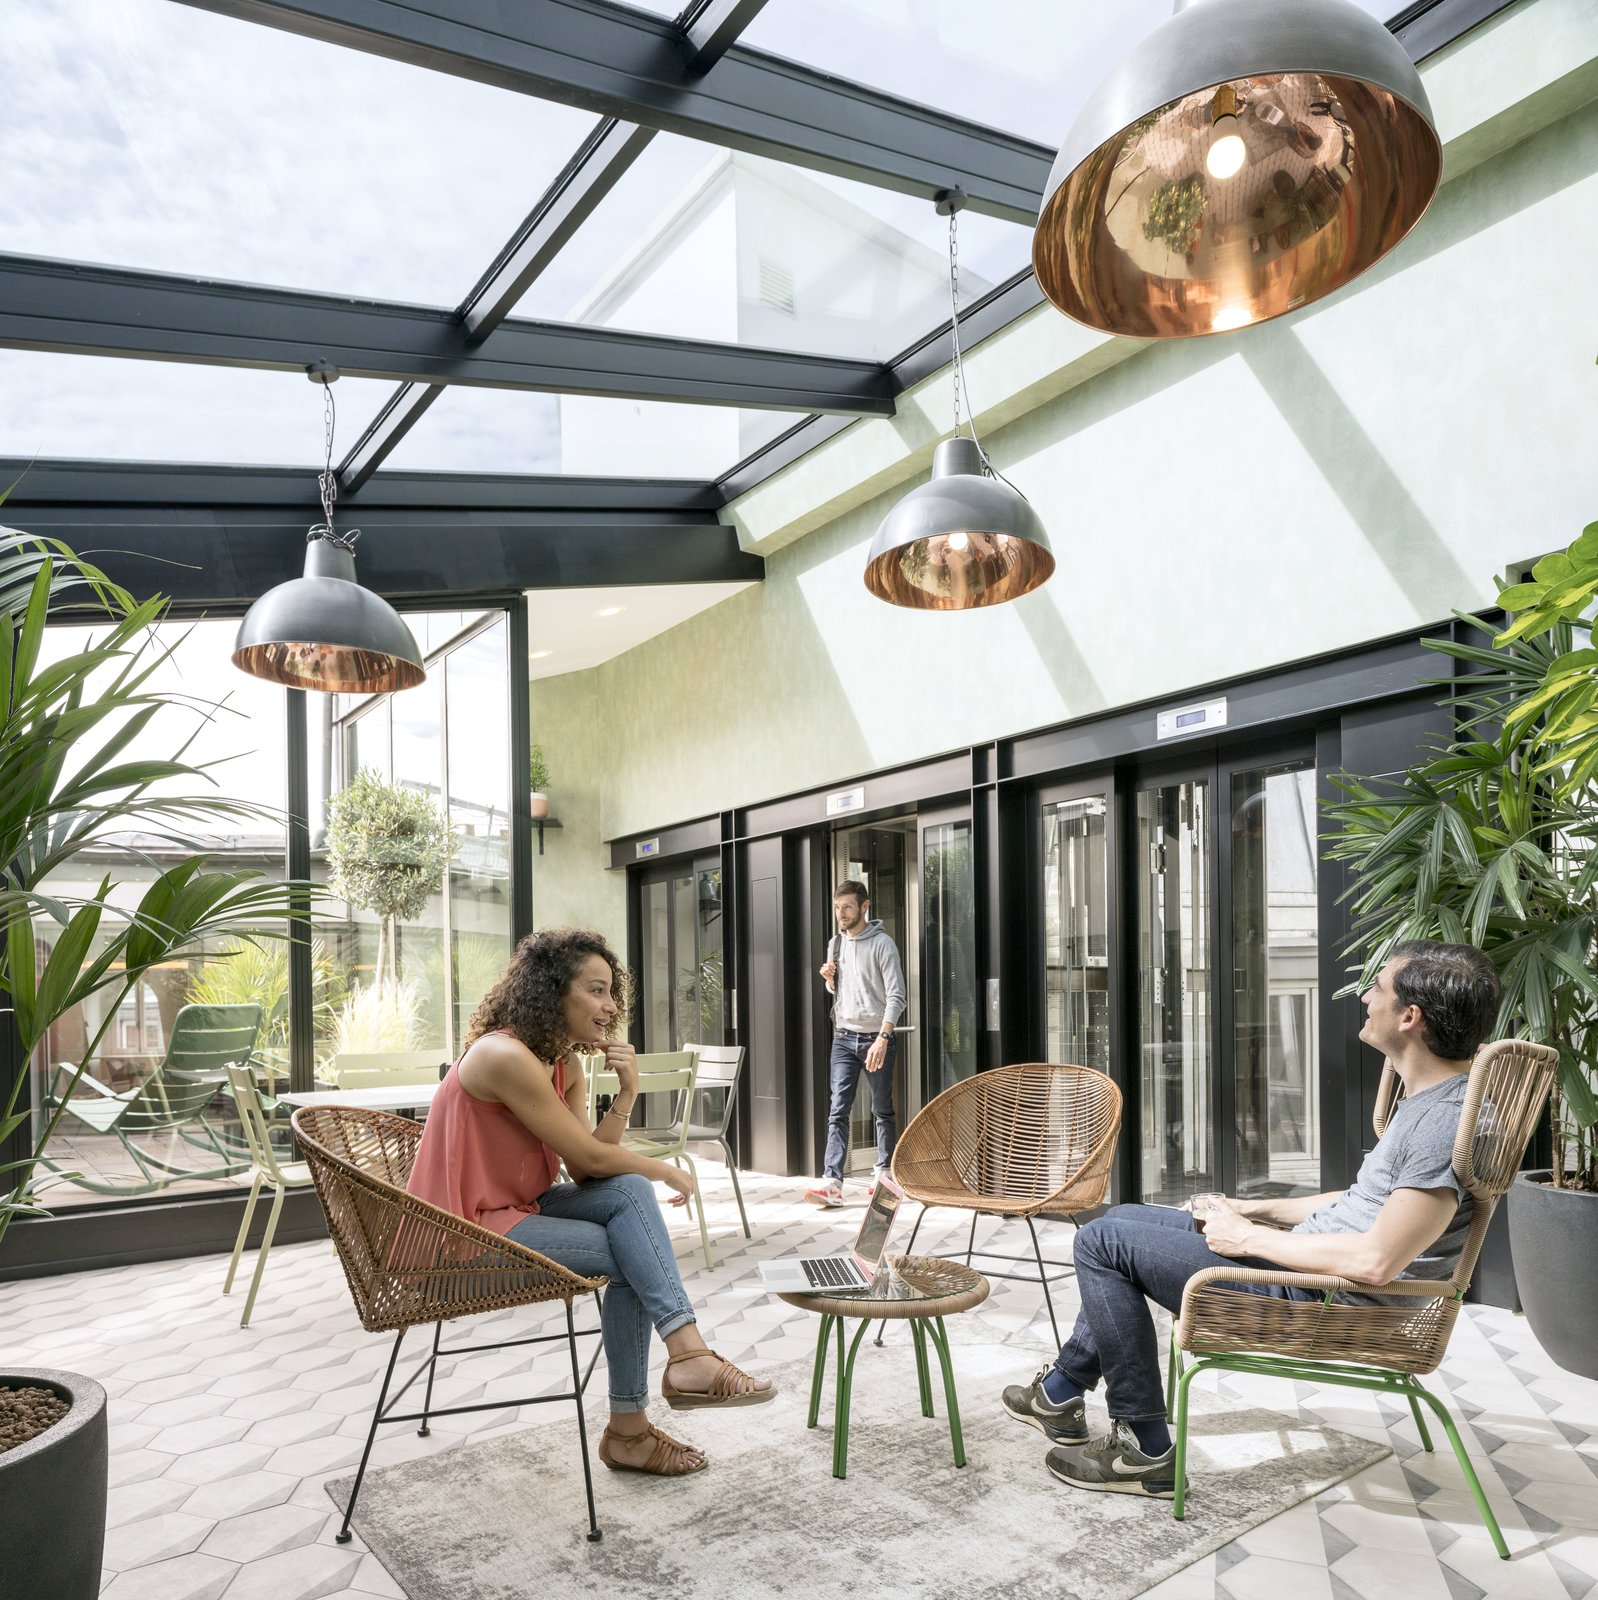 Stepping out of the elevator on the 6th floor, visitors are transported into a luminous, vegetation-filled solarium. Take a Peek Inside Airbnb's New Loft-Inspired Office Space in Paris - Photo 2 of 14